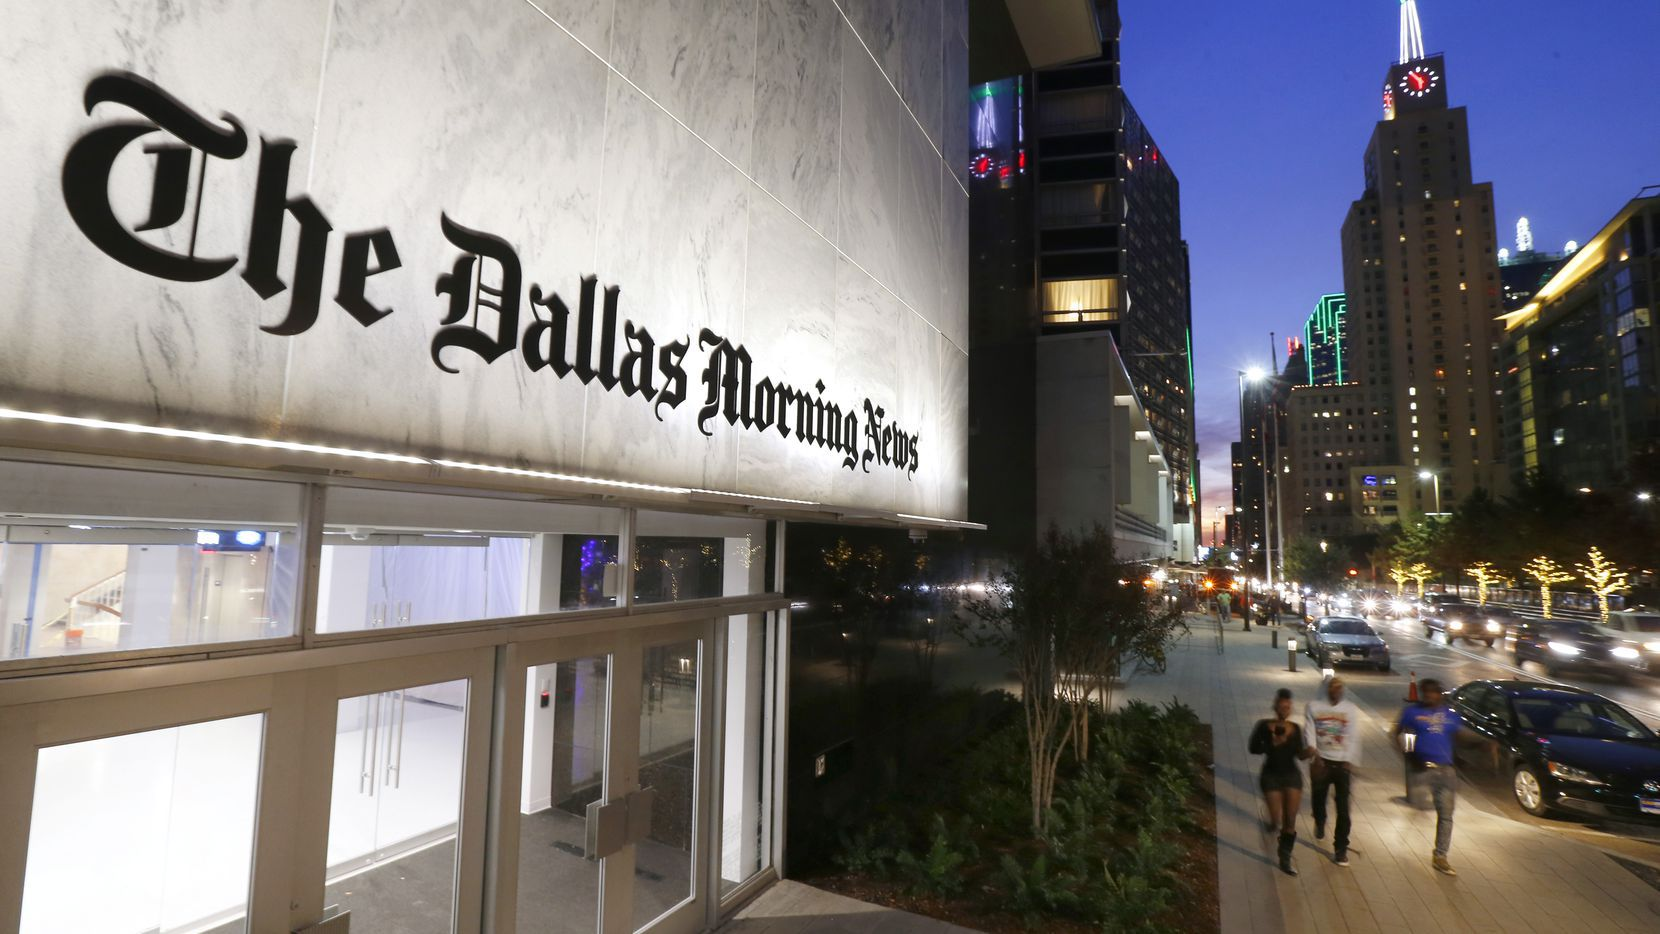 A. H. Belo Corporation will ask shareholders in May to approve changing its name to DallasNews Corporation.